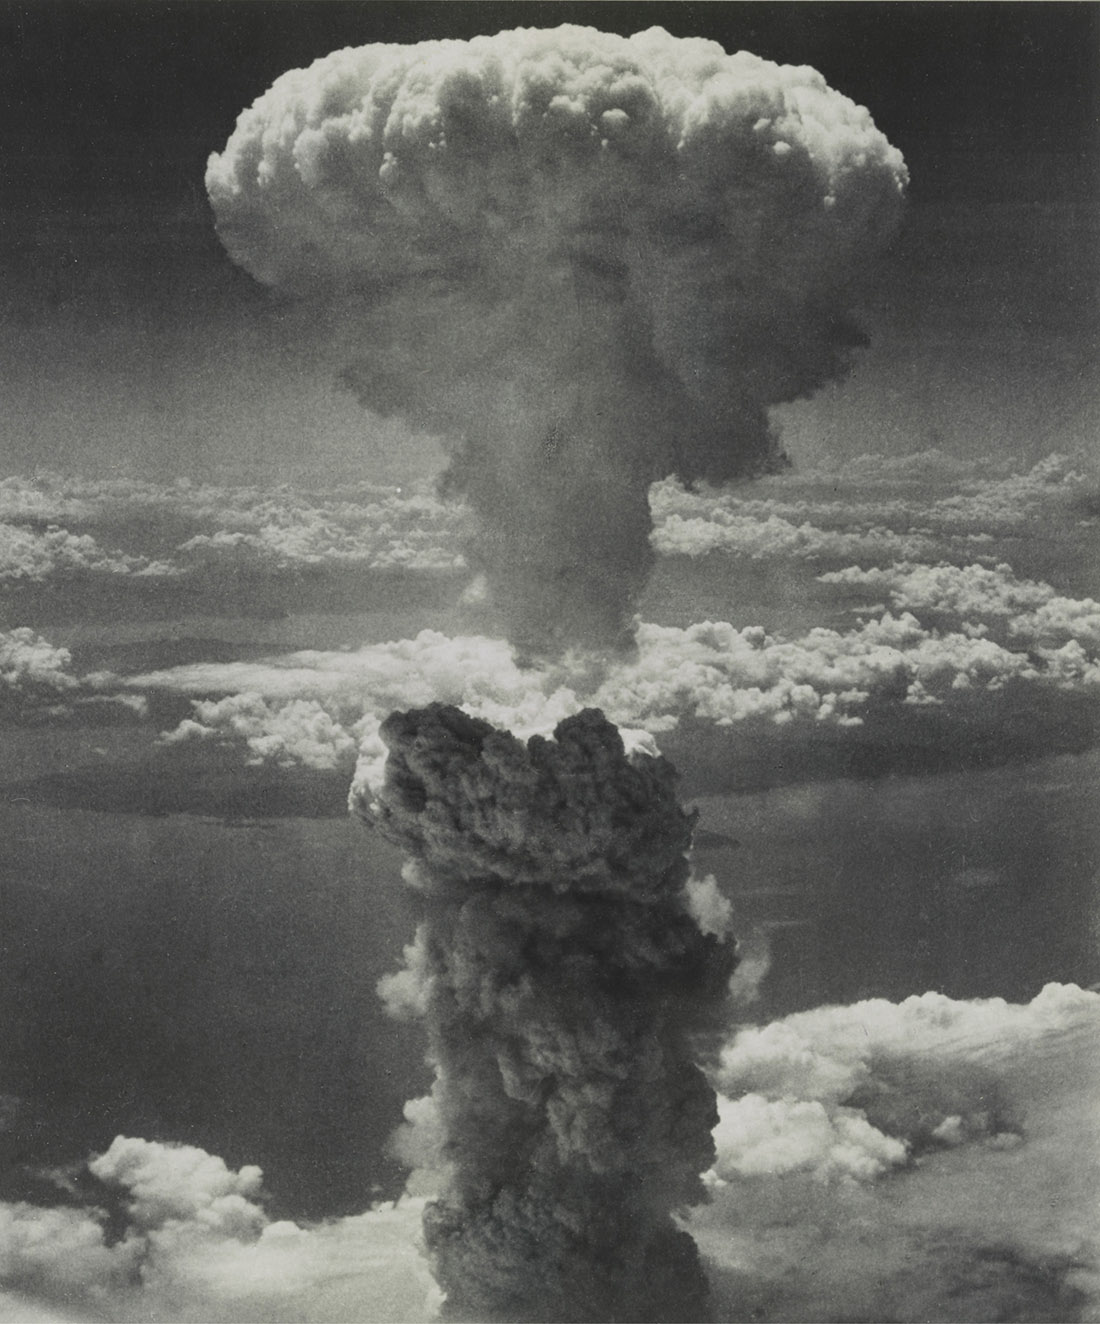 """Fat Man,"" the second atomic bomb developed by Manhattan Project physicists, is dropped on Nagasaki, Japan, on Aug. 9, 1945, prompting the end of World War II. (LIBRARY OF CONGRESS ARCHIVES)"